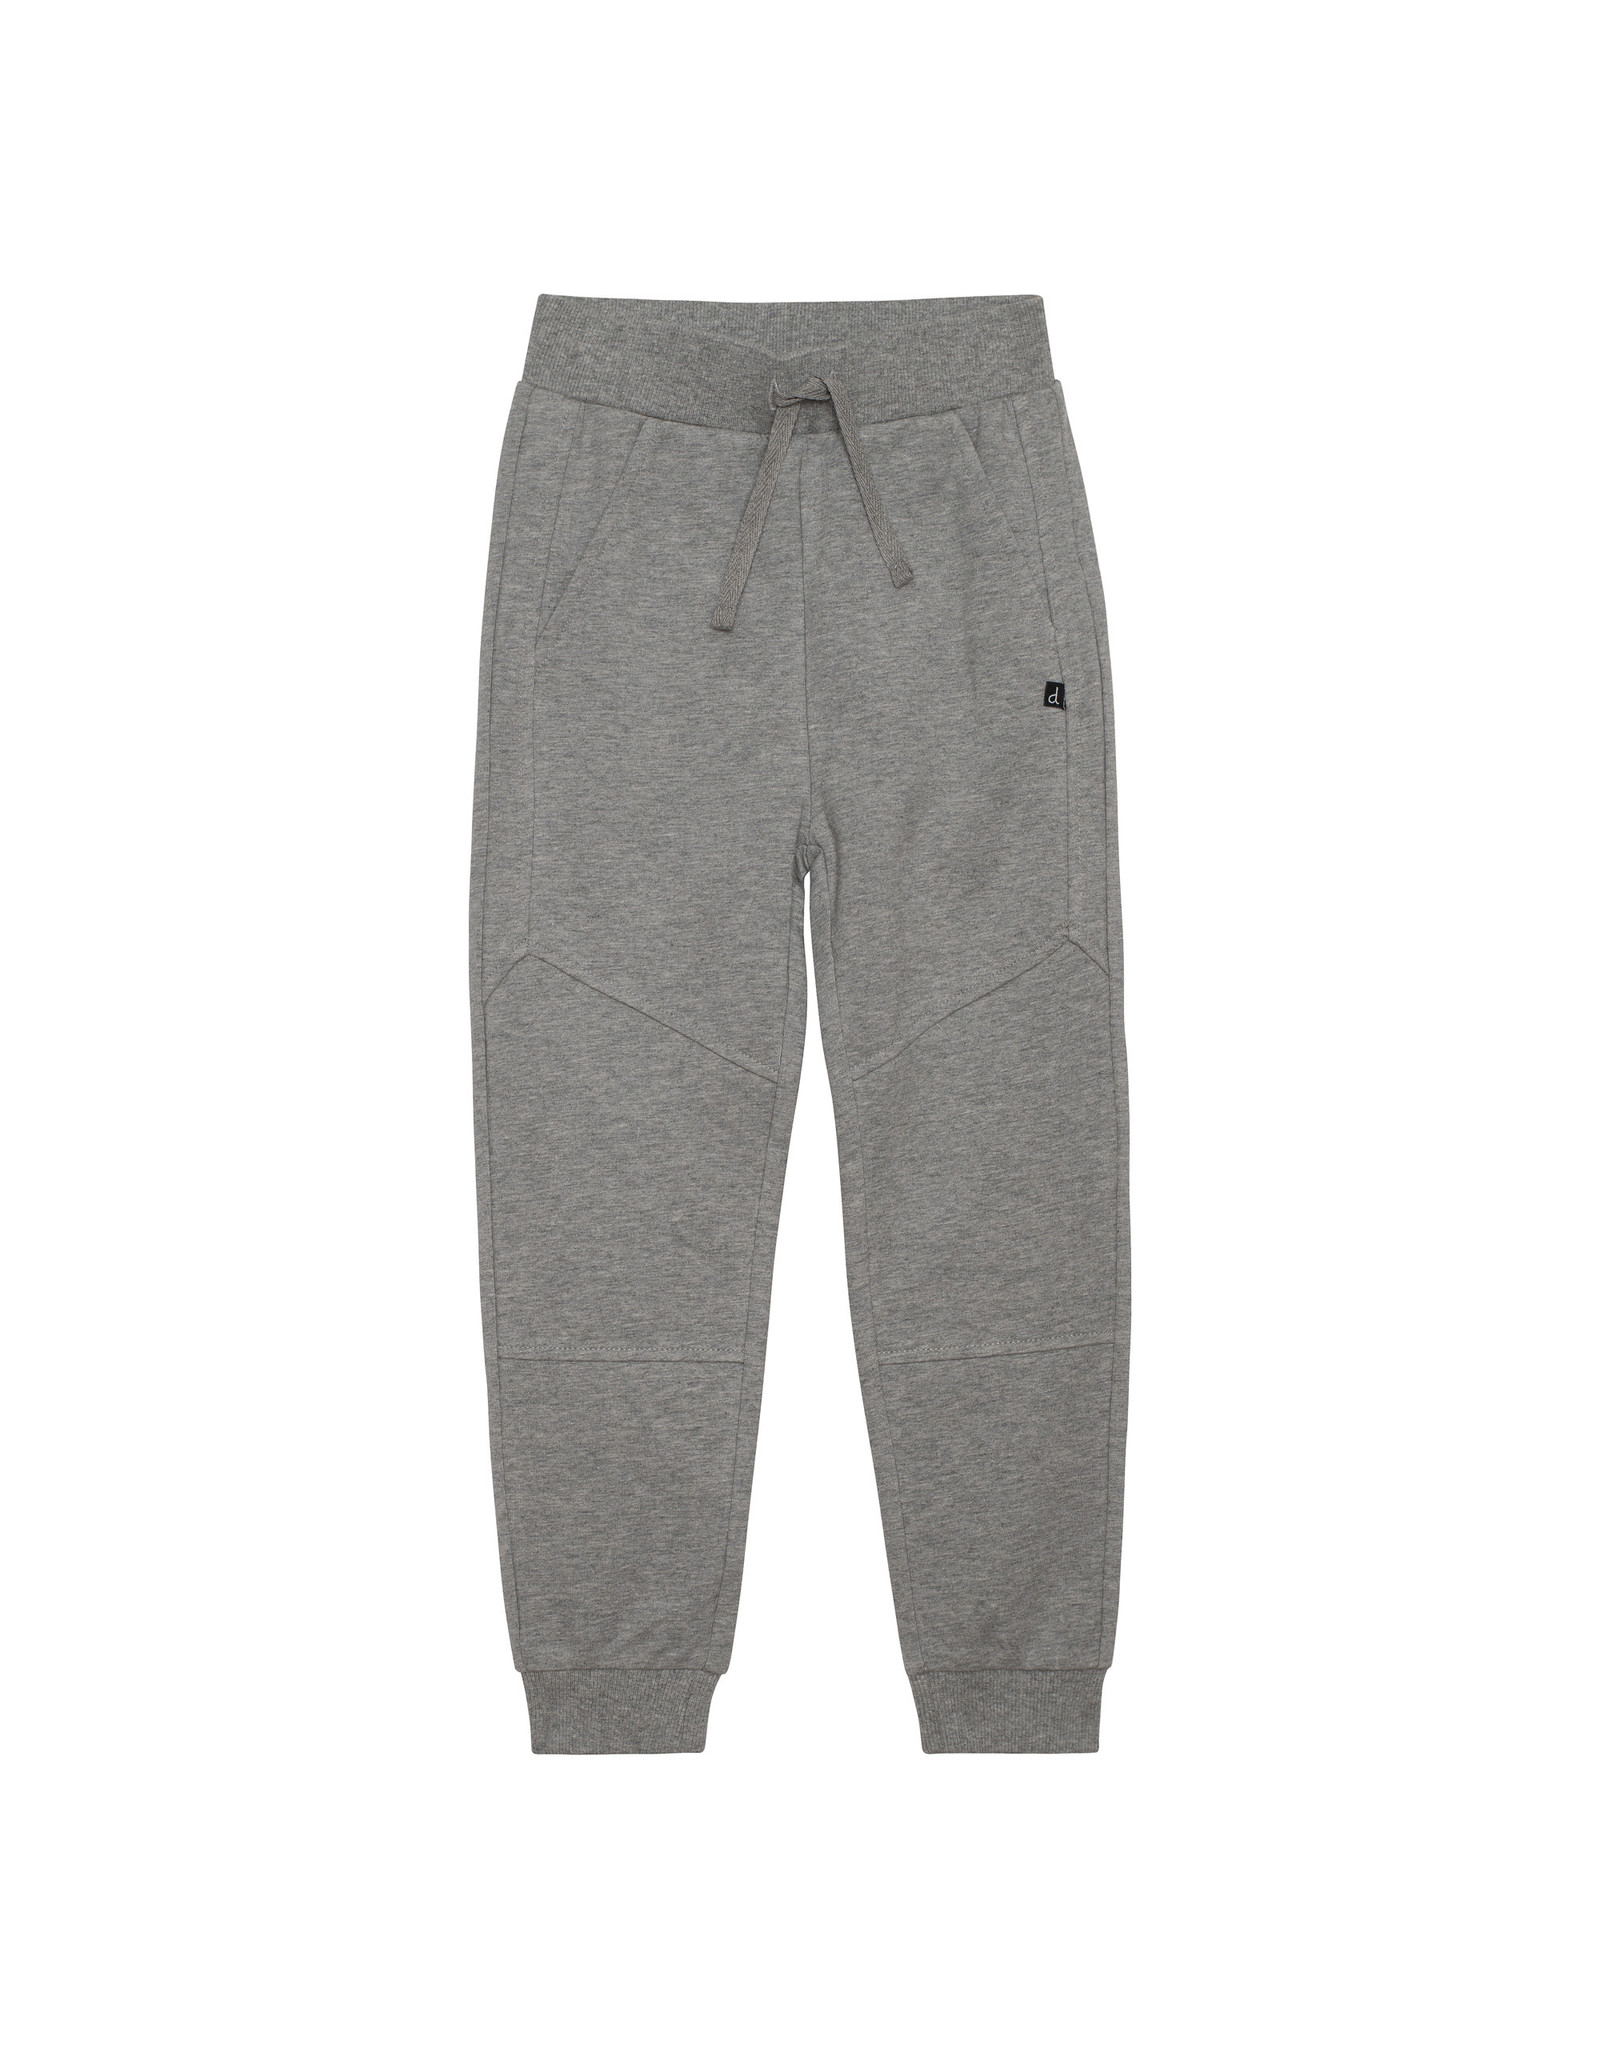 Deux Par Deux French Terry Sweatpants - Light Grey